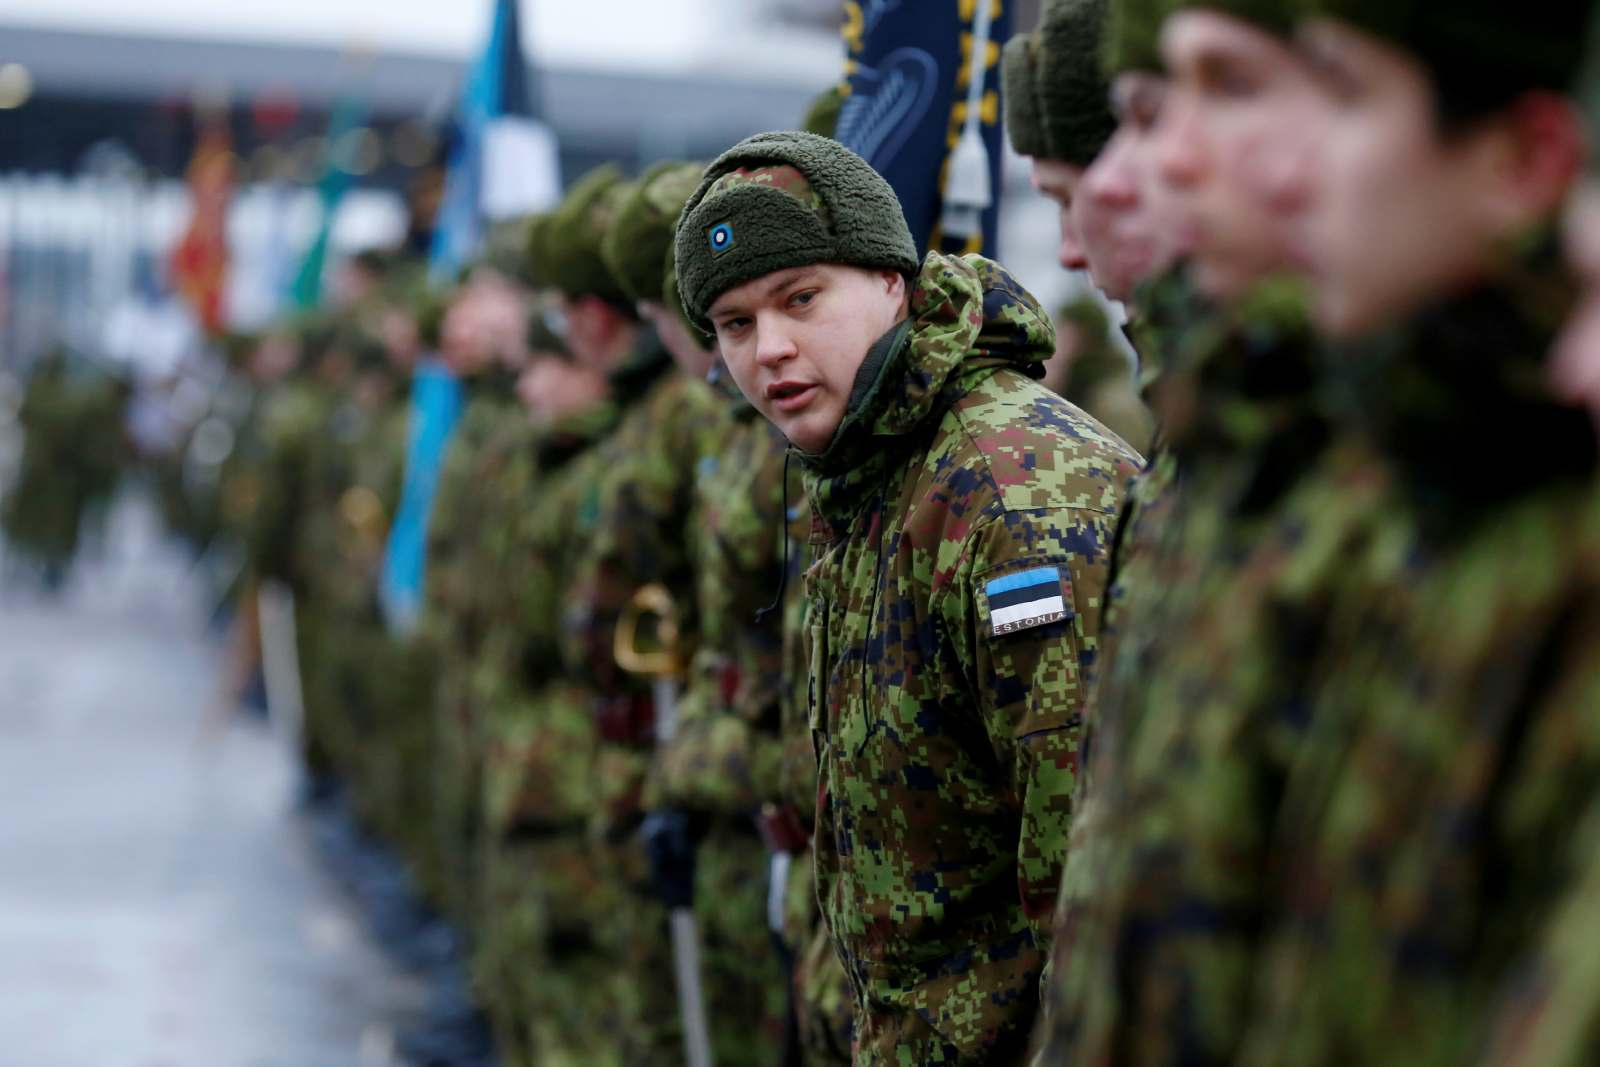 Estonian soldiers get ready for the commemoration of the centennial of the War of Independence ceasefire near the border crossing point with Russia in Narva, Estonia January 3, 2020.